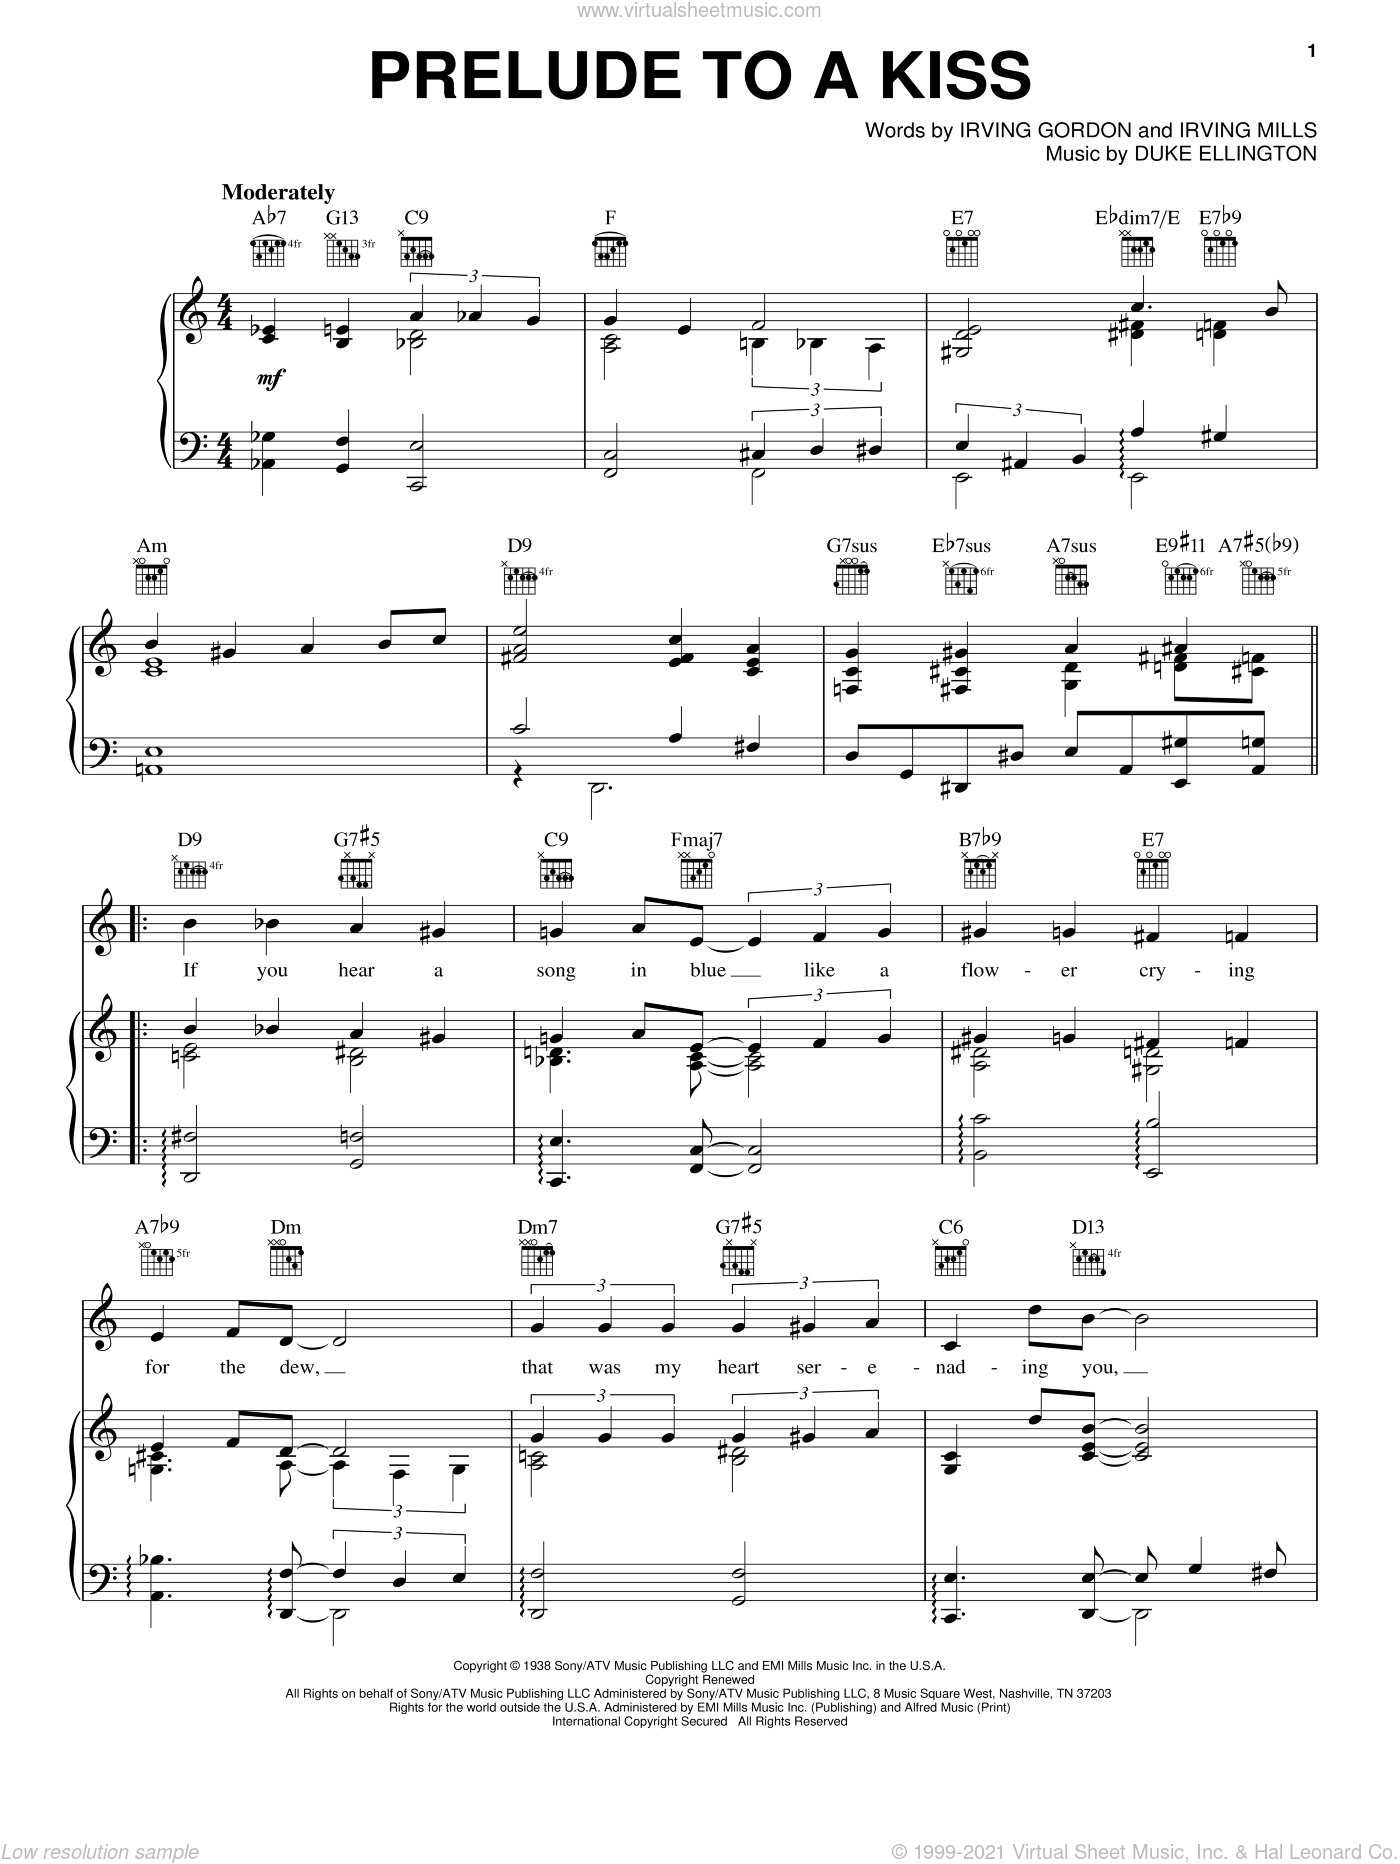 Prelude To A Kiss sheet music for voice, piano or guitar by Duke Ellington, Irving Gordon and Irving Mills, intermediate skill level